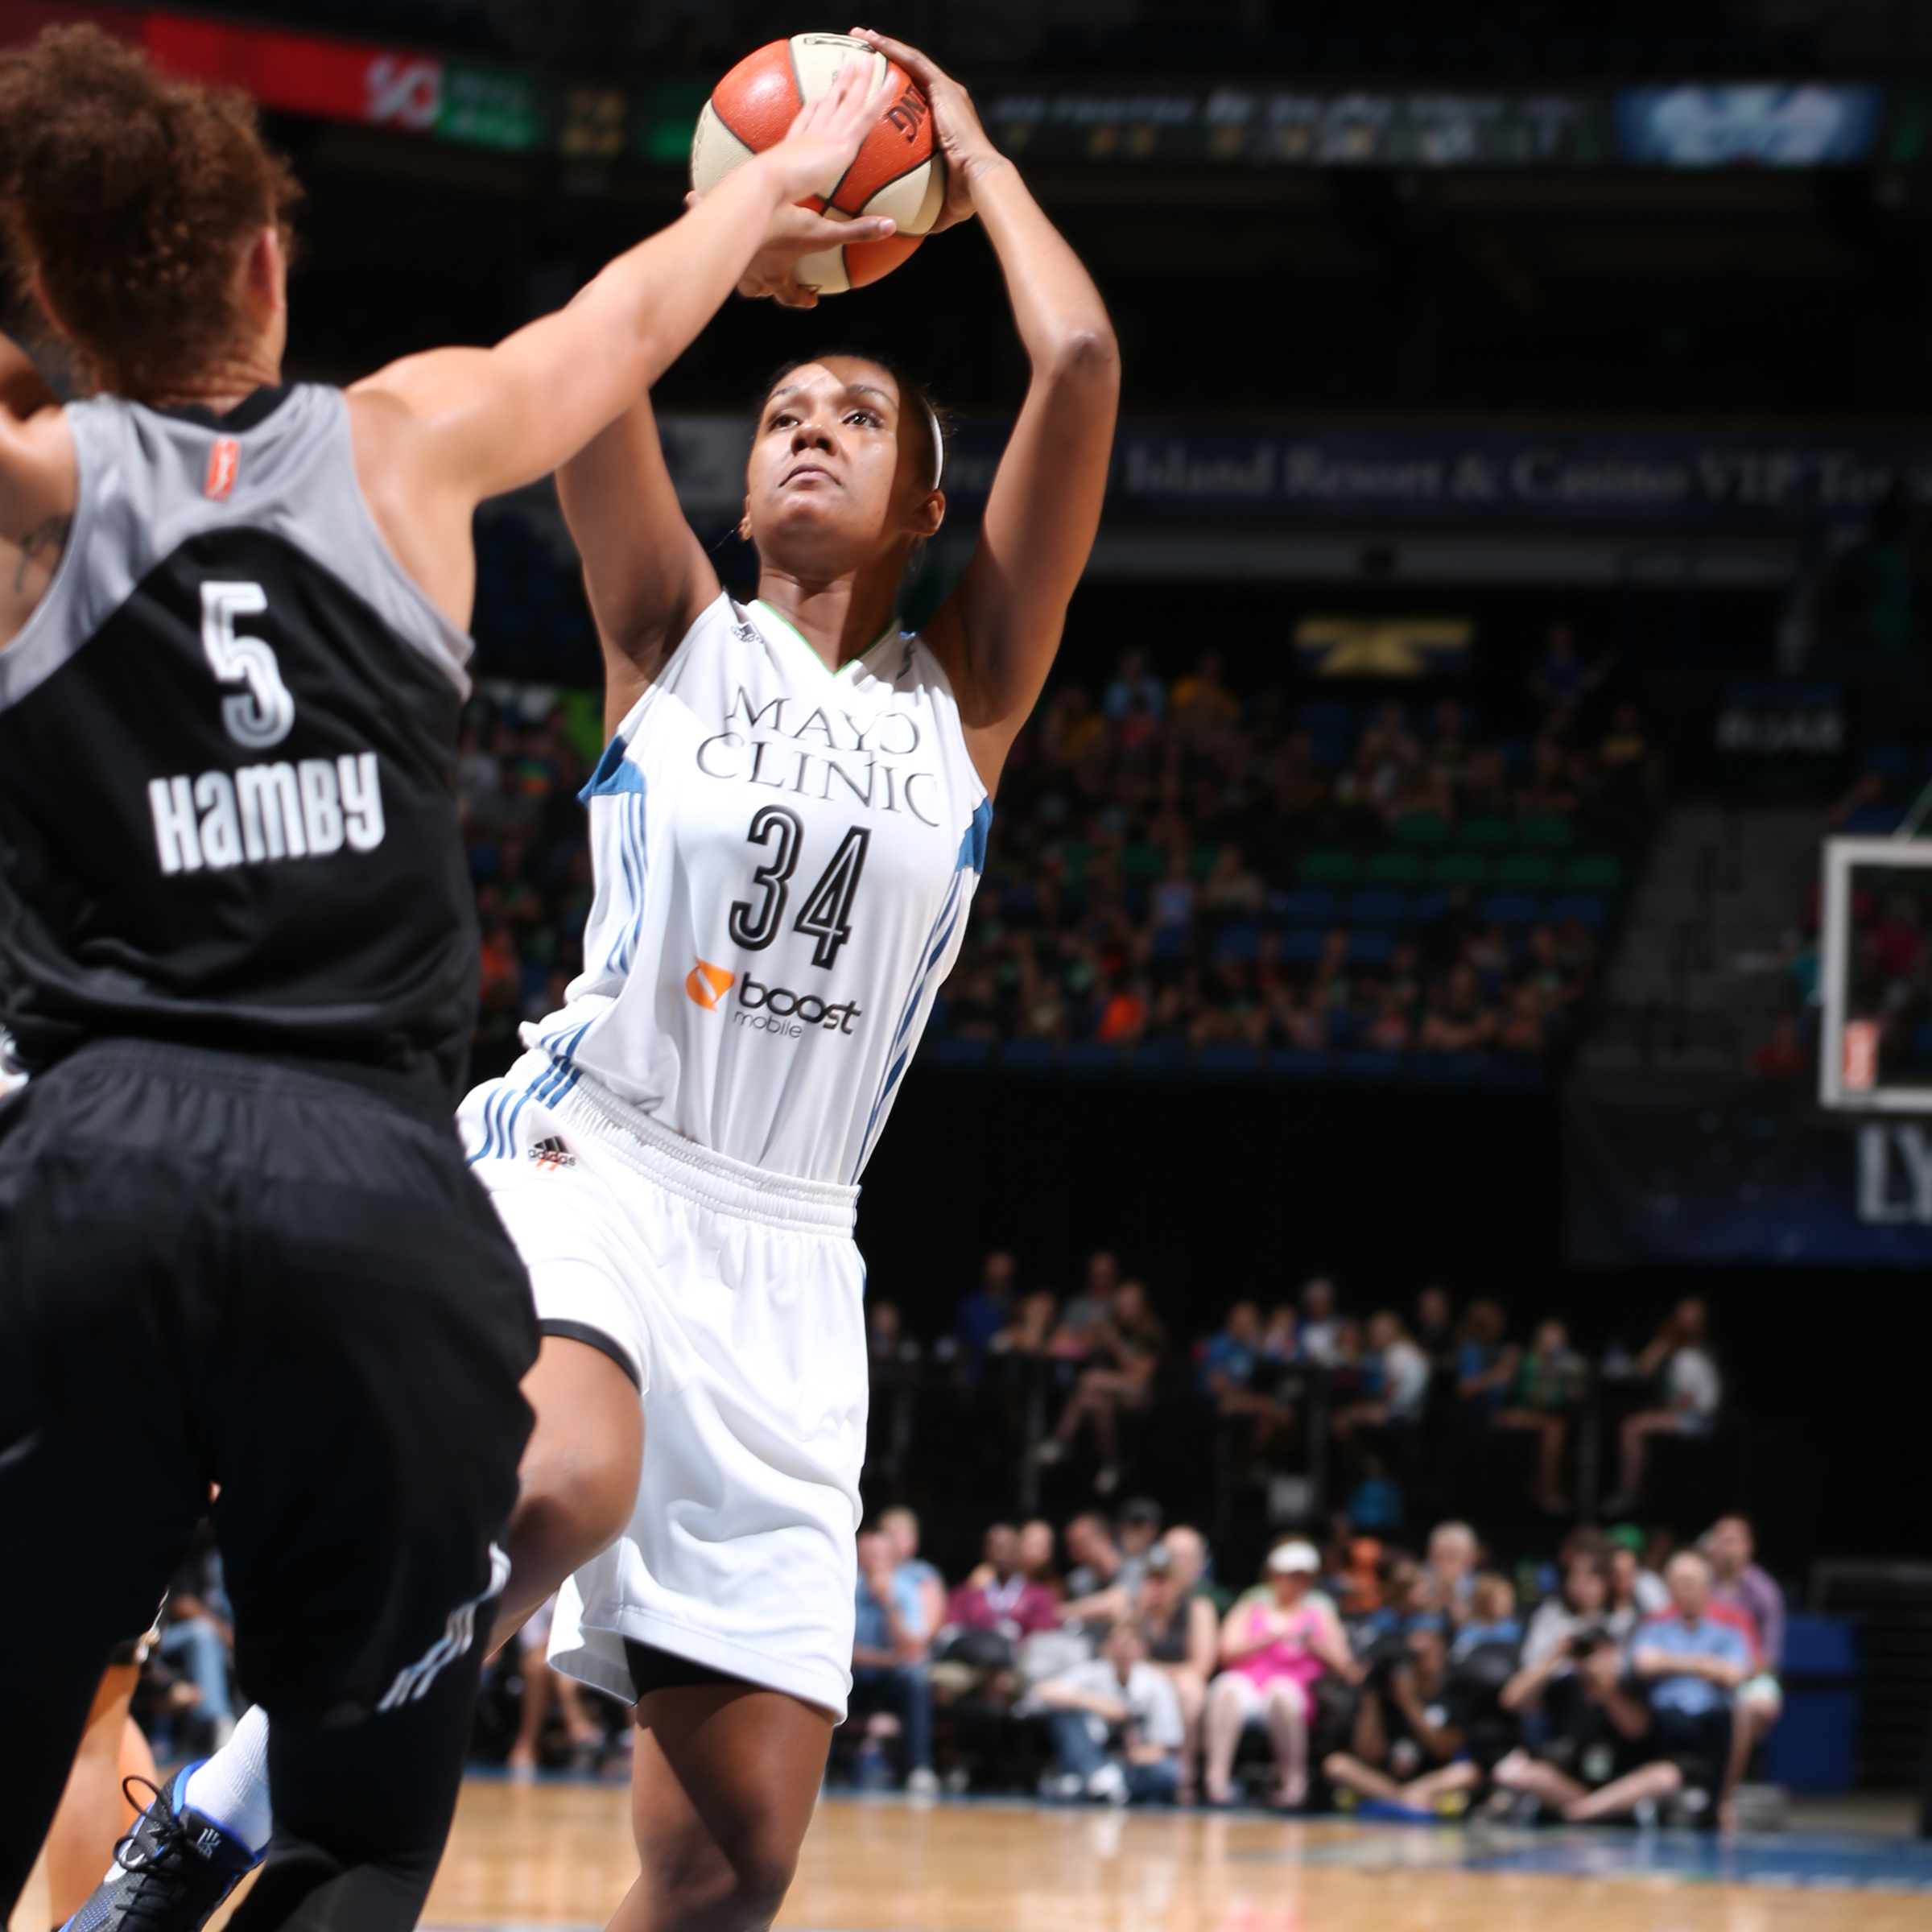 Keeping with the trend of solid bench performers for the Lynx, center Damiris Dantas pitched in nine points and four rebounds.